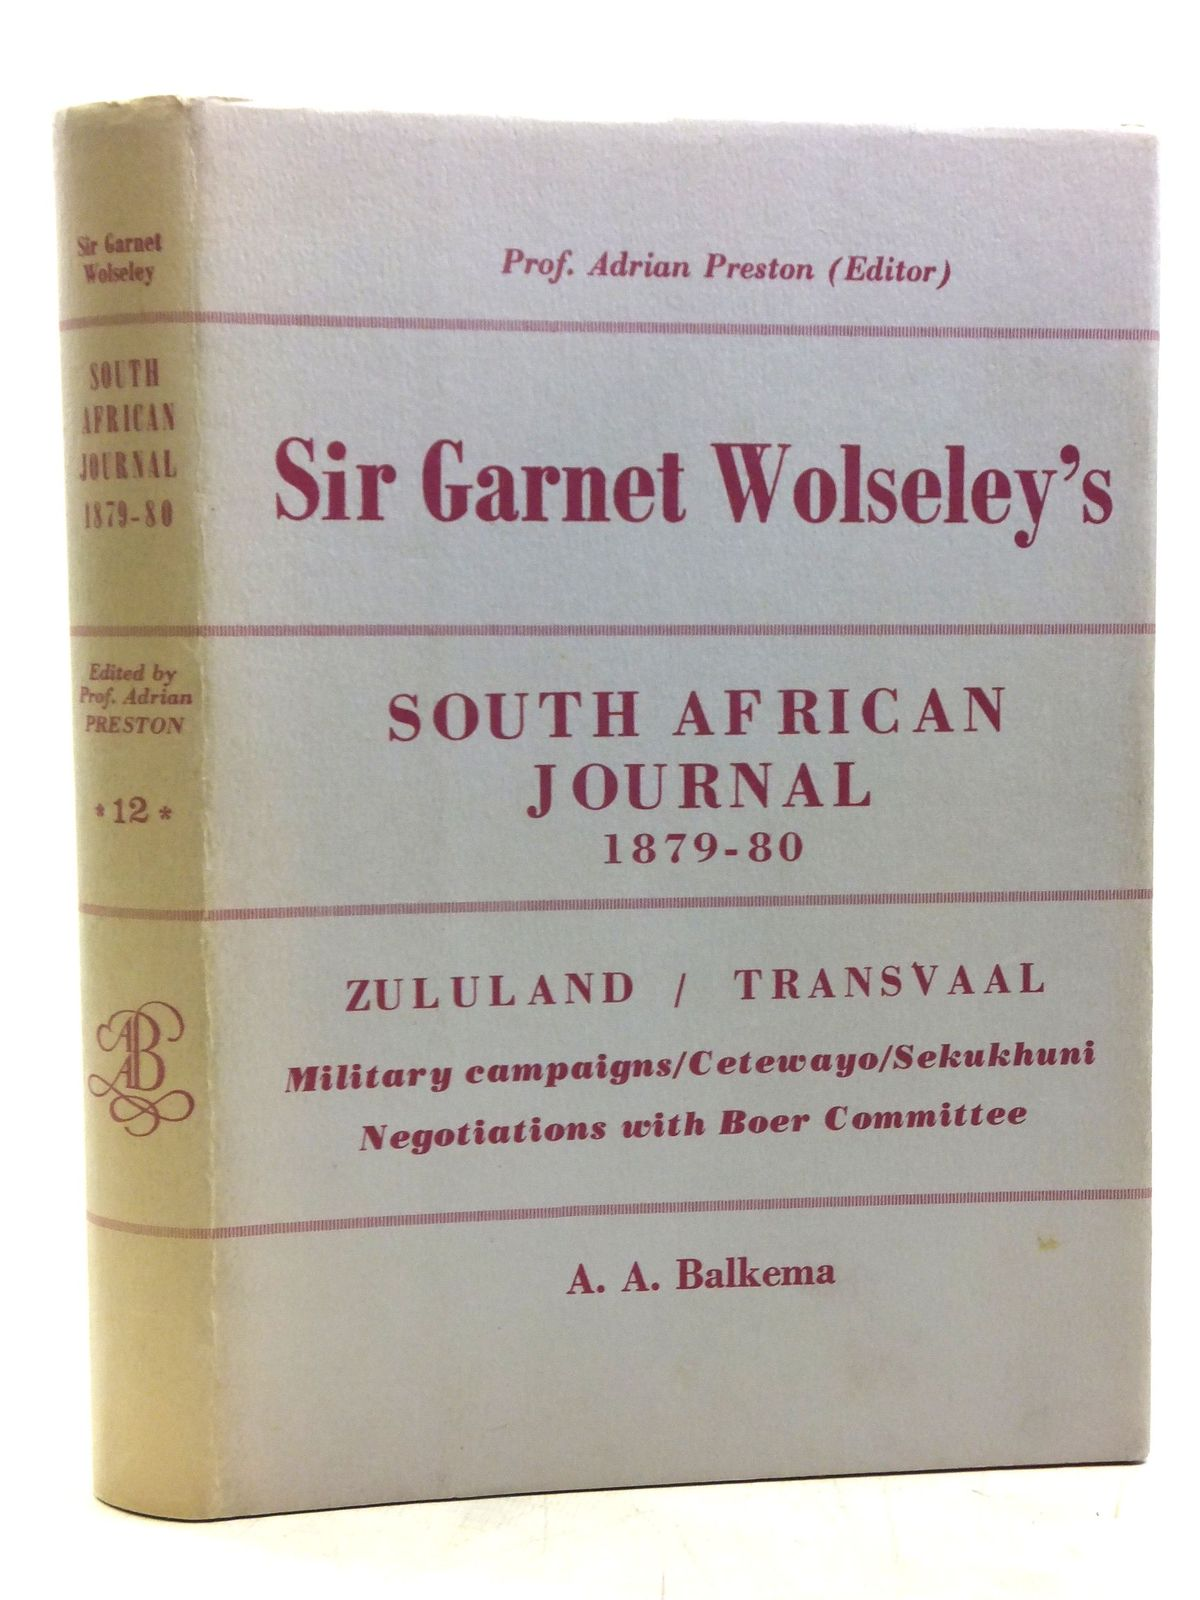 Photo of THE SOUTH AFRICAN JOURNAL OF SIR GARNET WOLSELEY 1879-1880 written by Preston, Adrian<br />Wolseley, Sir Garnet published by A.A. Balkema (STOCK CODE: 2119106)  for sale by Stella & Rose's Books